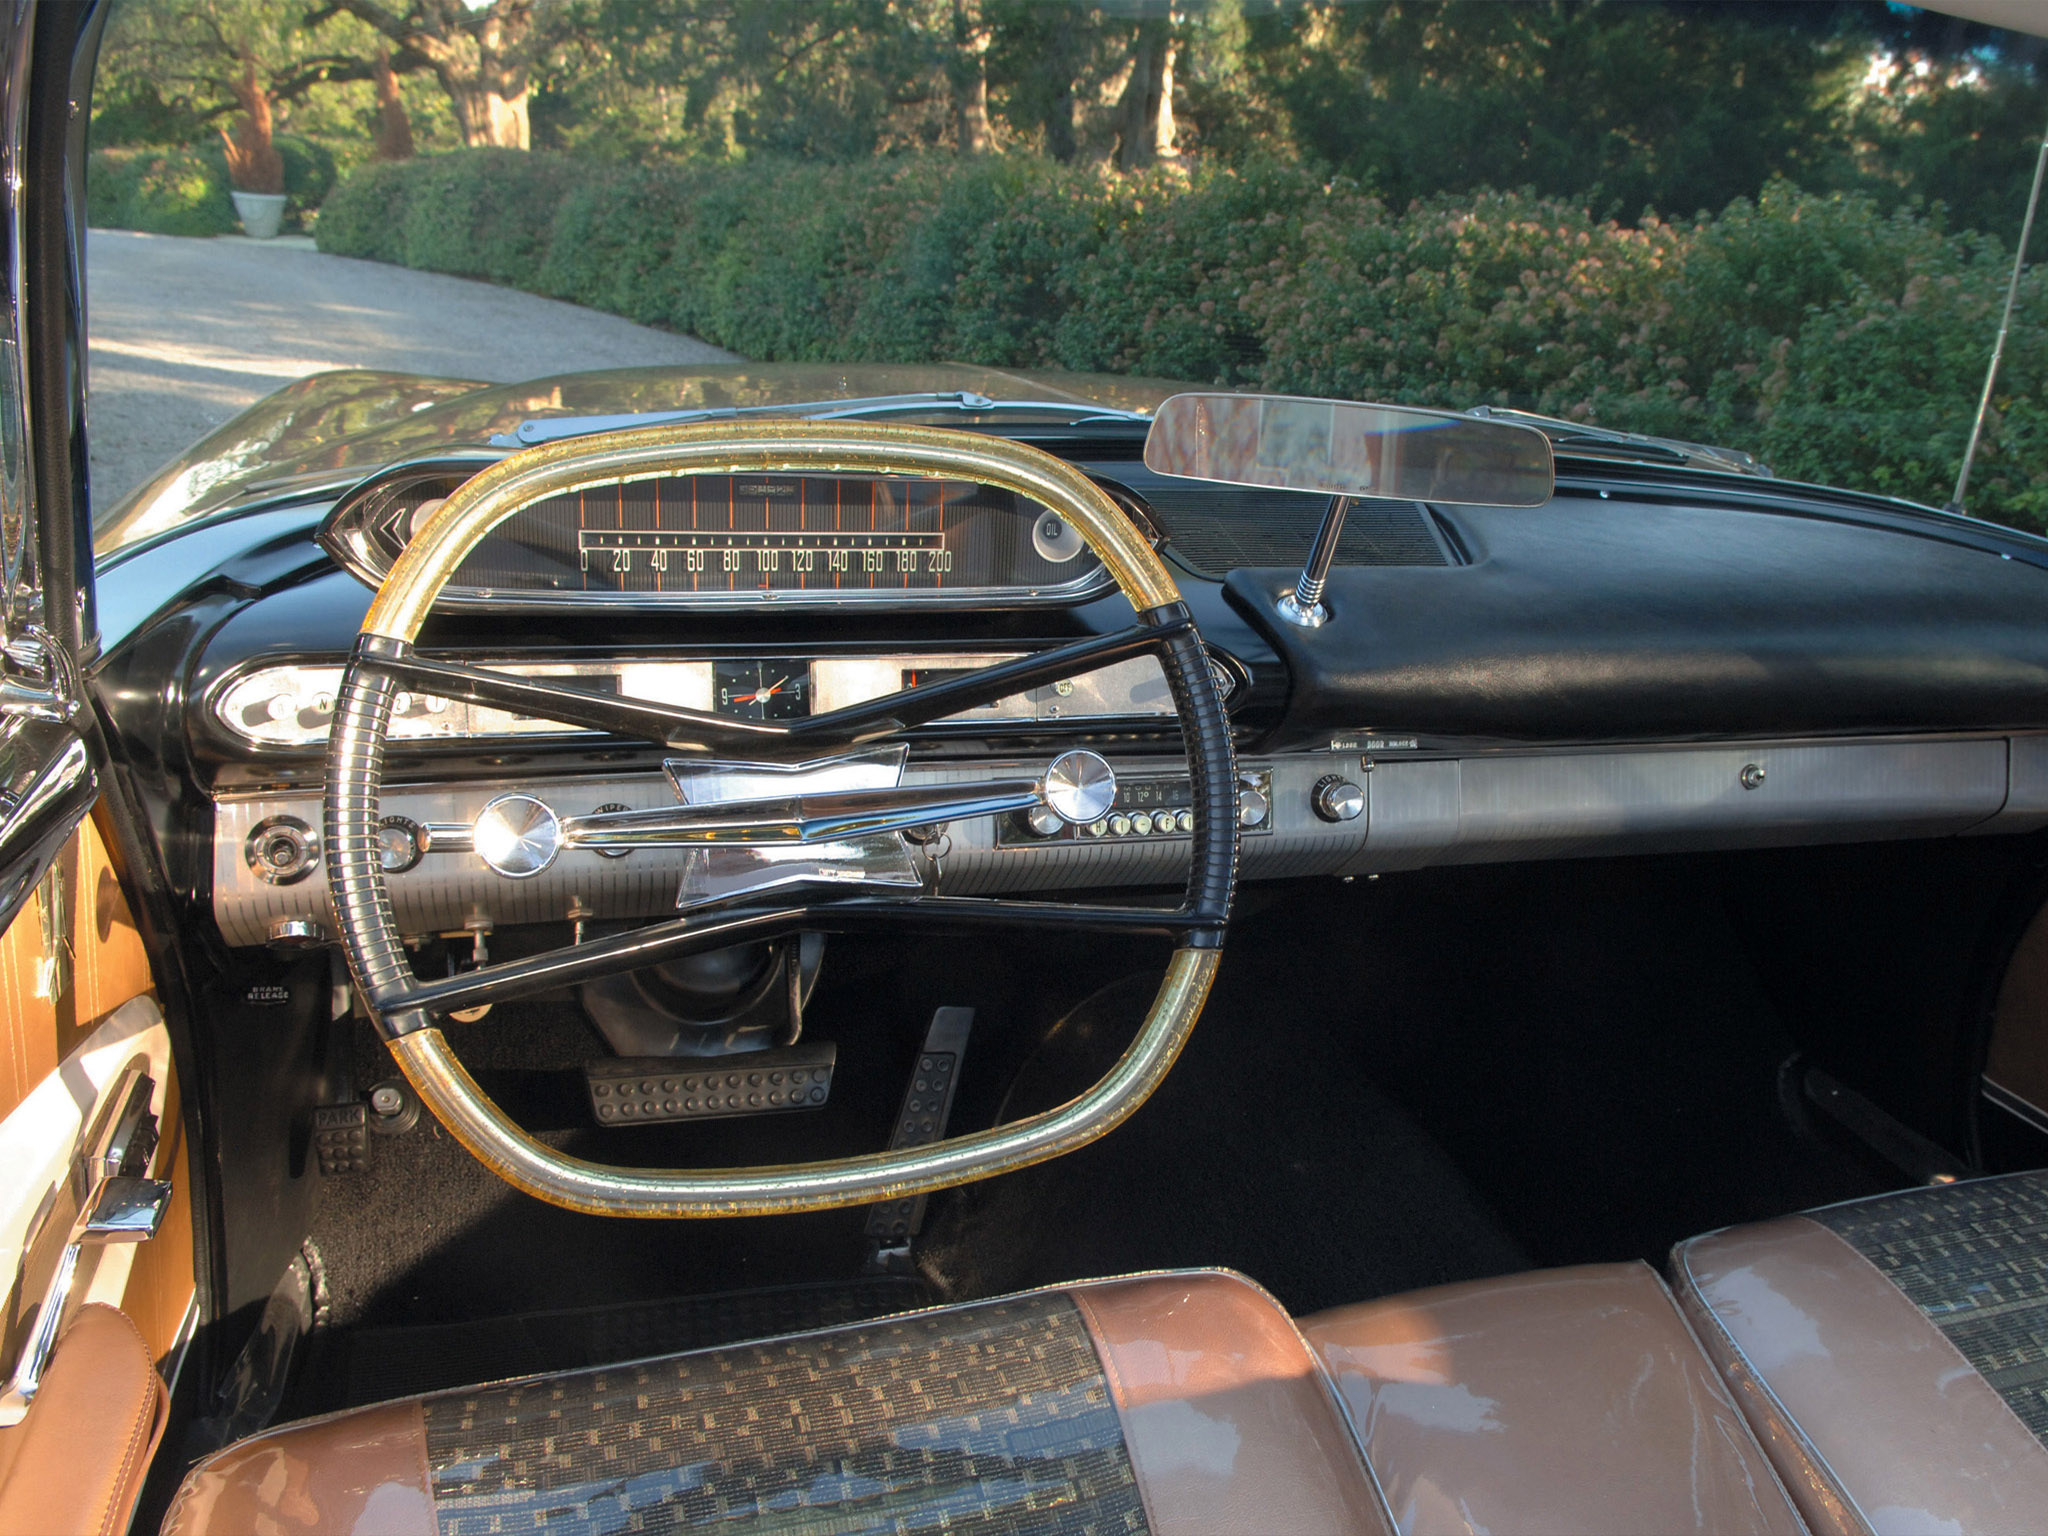 Plymouth Fury Convertible 1960 Photo Download Full Size 2048 1536 Pixels